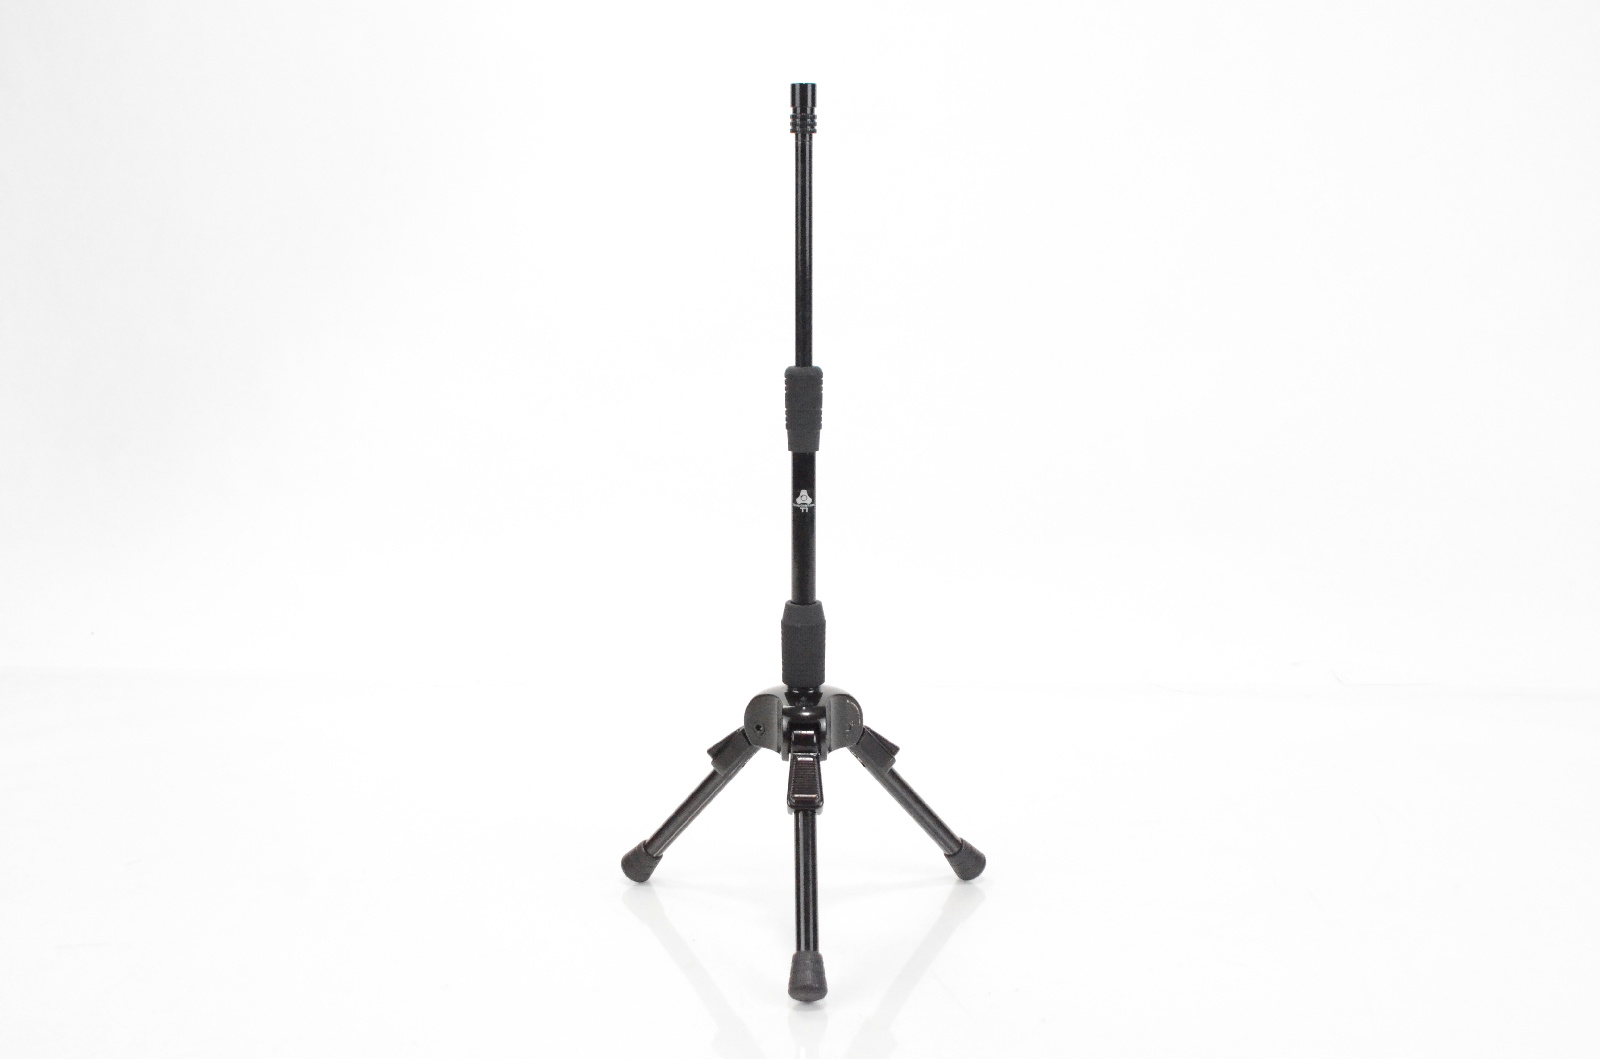 Triad-Orbit T1 Short Tripod Advanced Mic System Stand Kato Khandwala #33729